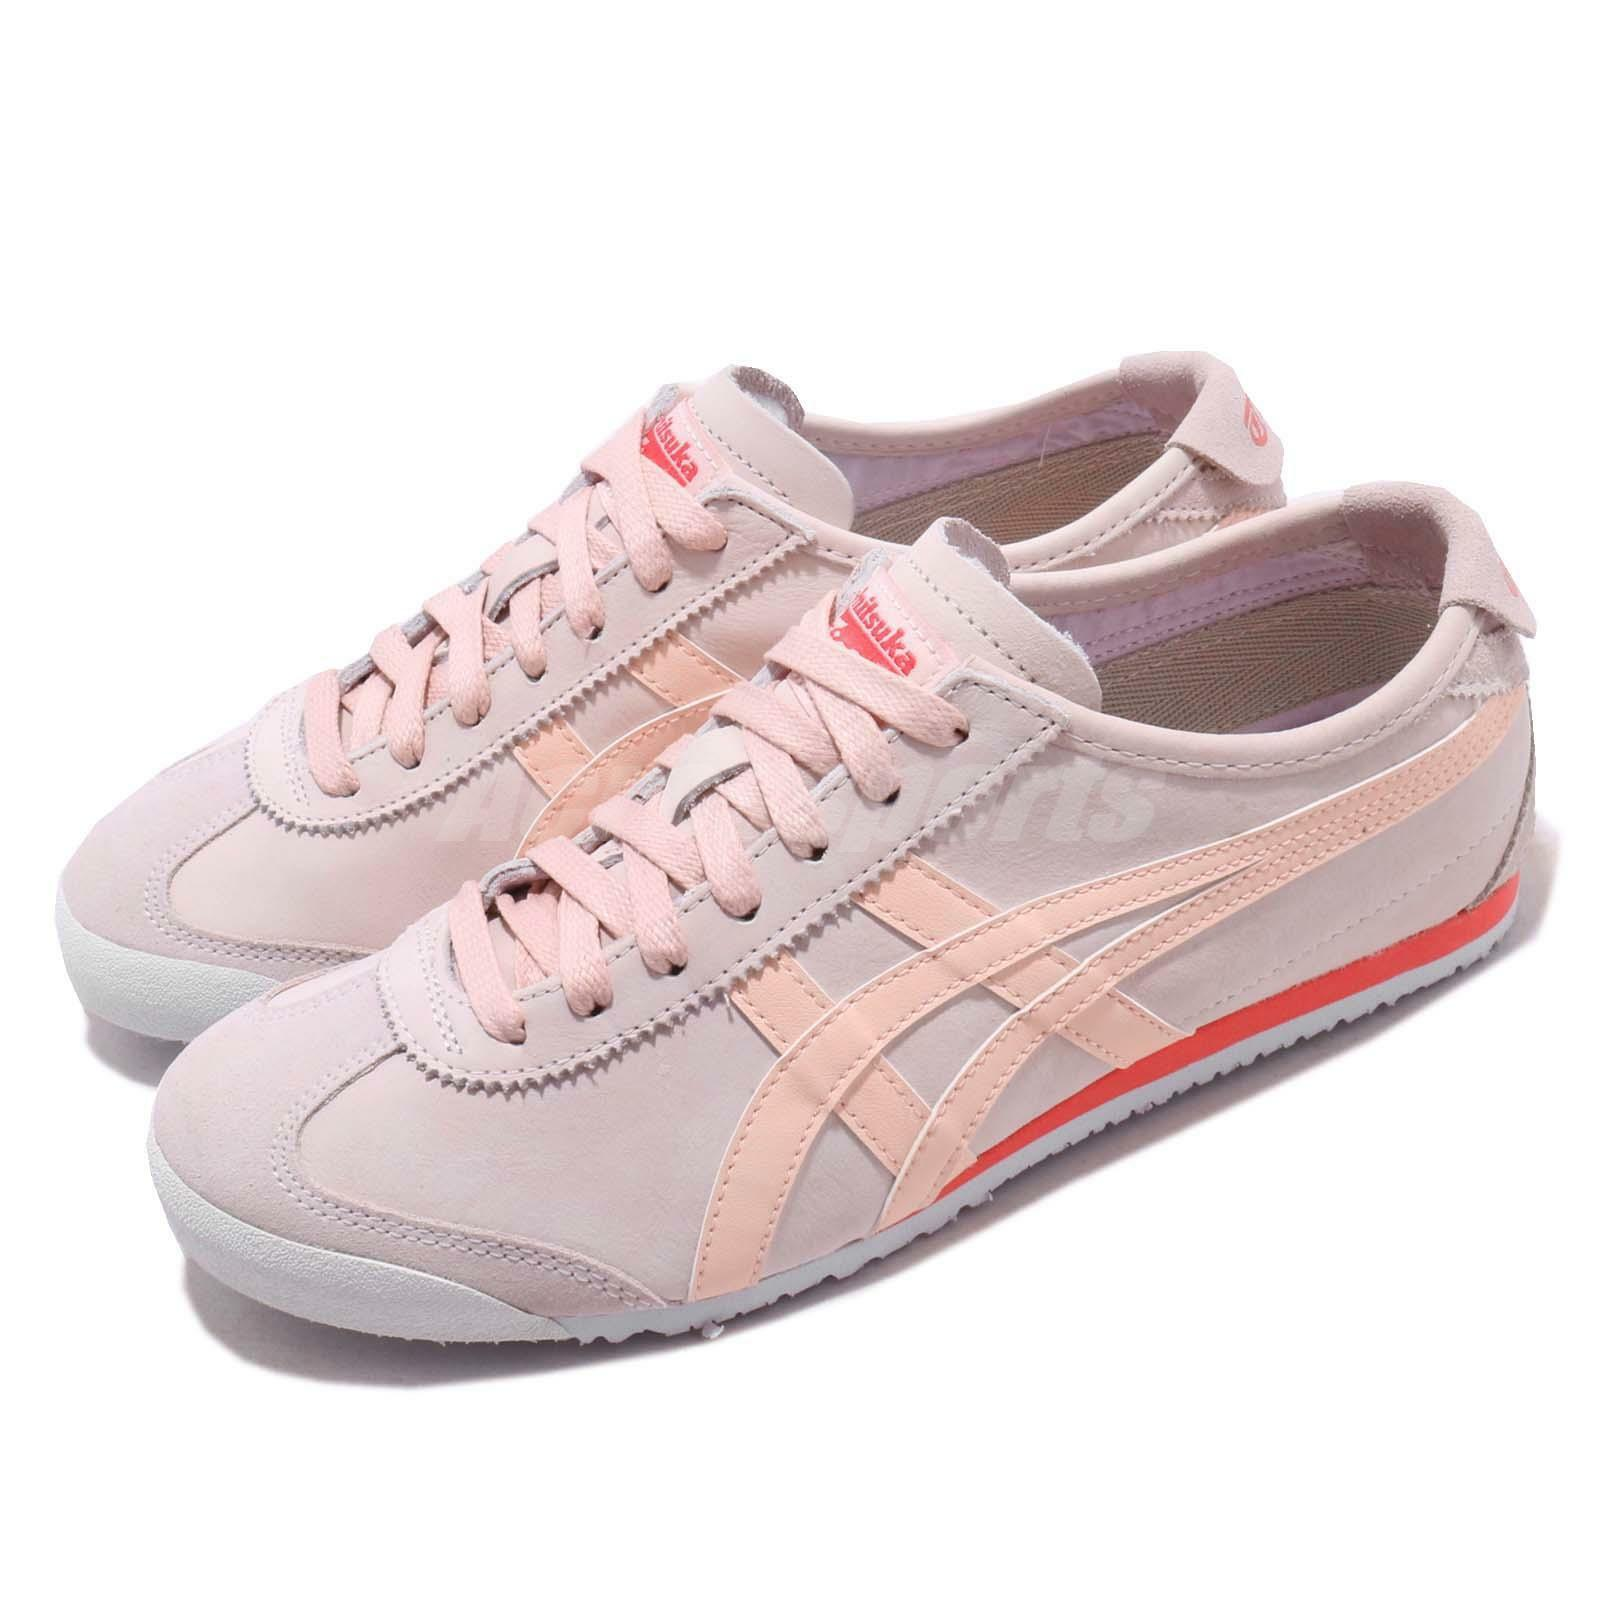 Asics Onitsuka Tiger Mexico 66 bleush Breeze Rose Hommes Femmes Chaussures 1183A359-701